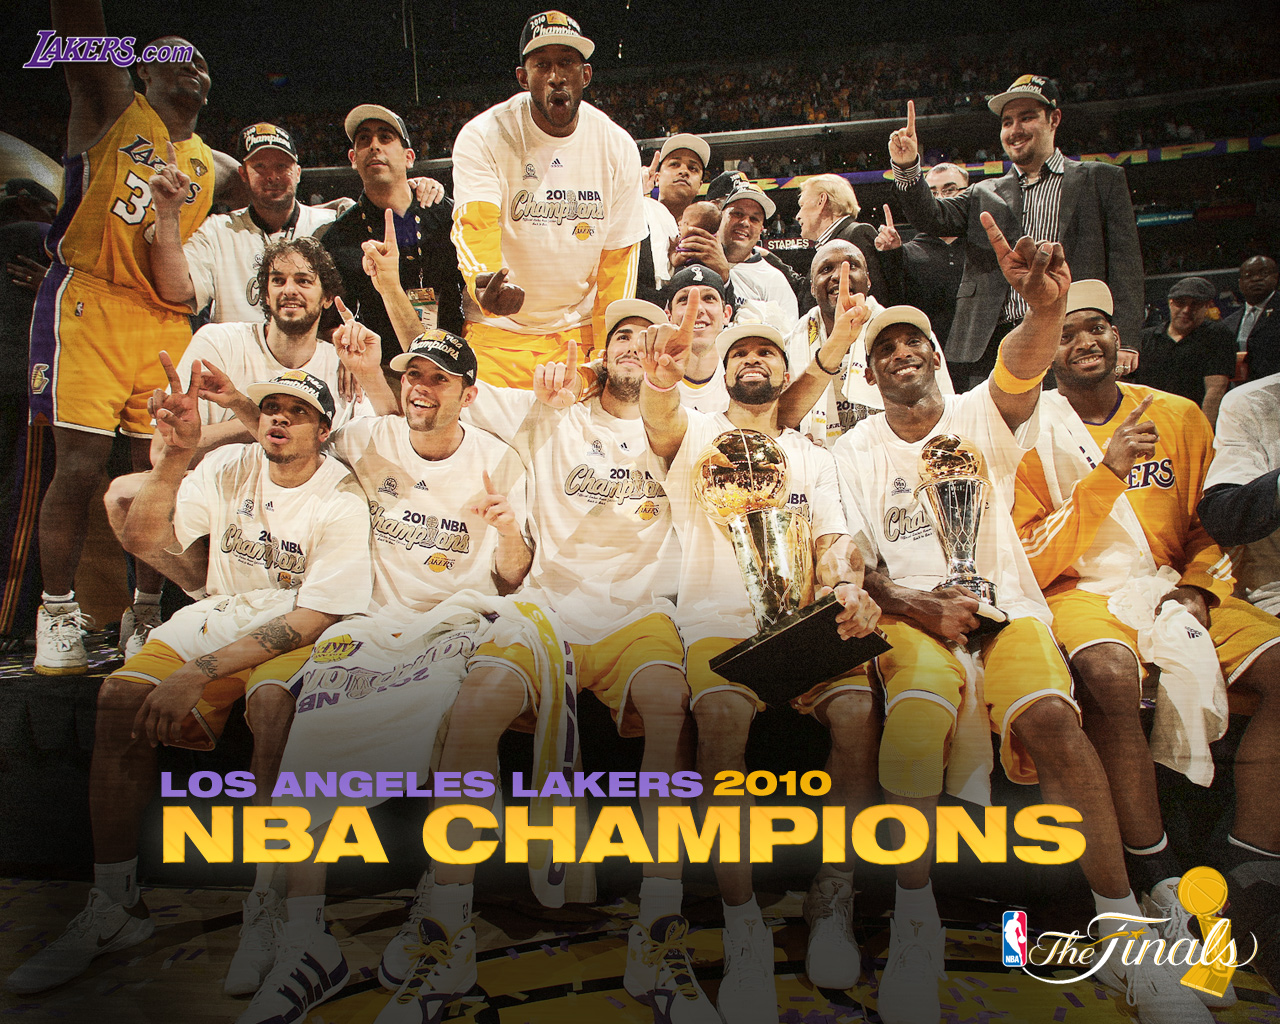 Lakers Logo on Los Angeles Lakers Nba 2010 Champions Wallpaper Winners Lakers